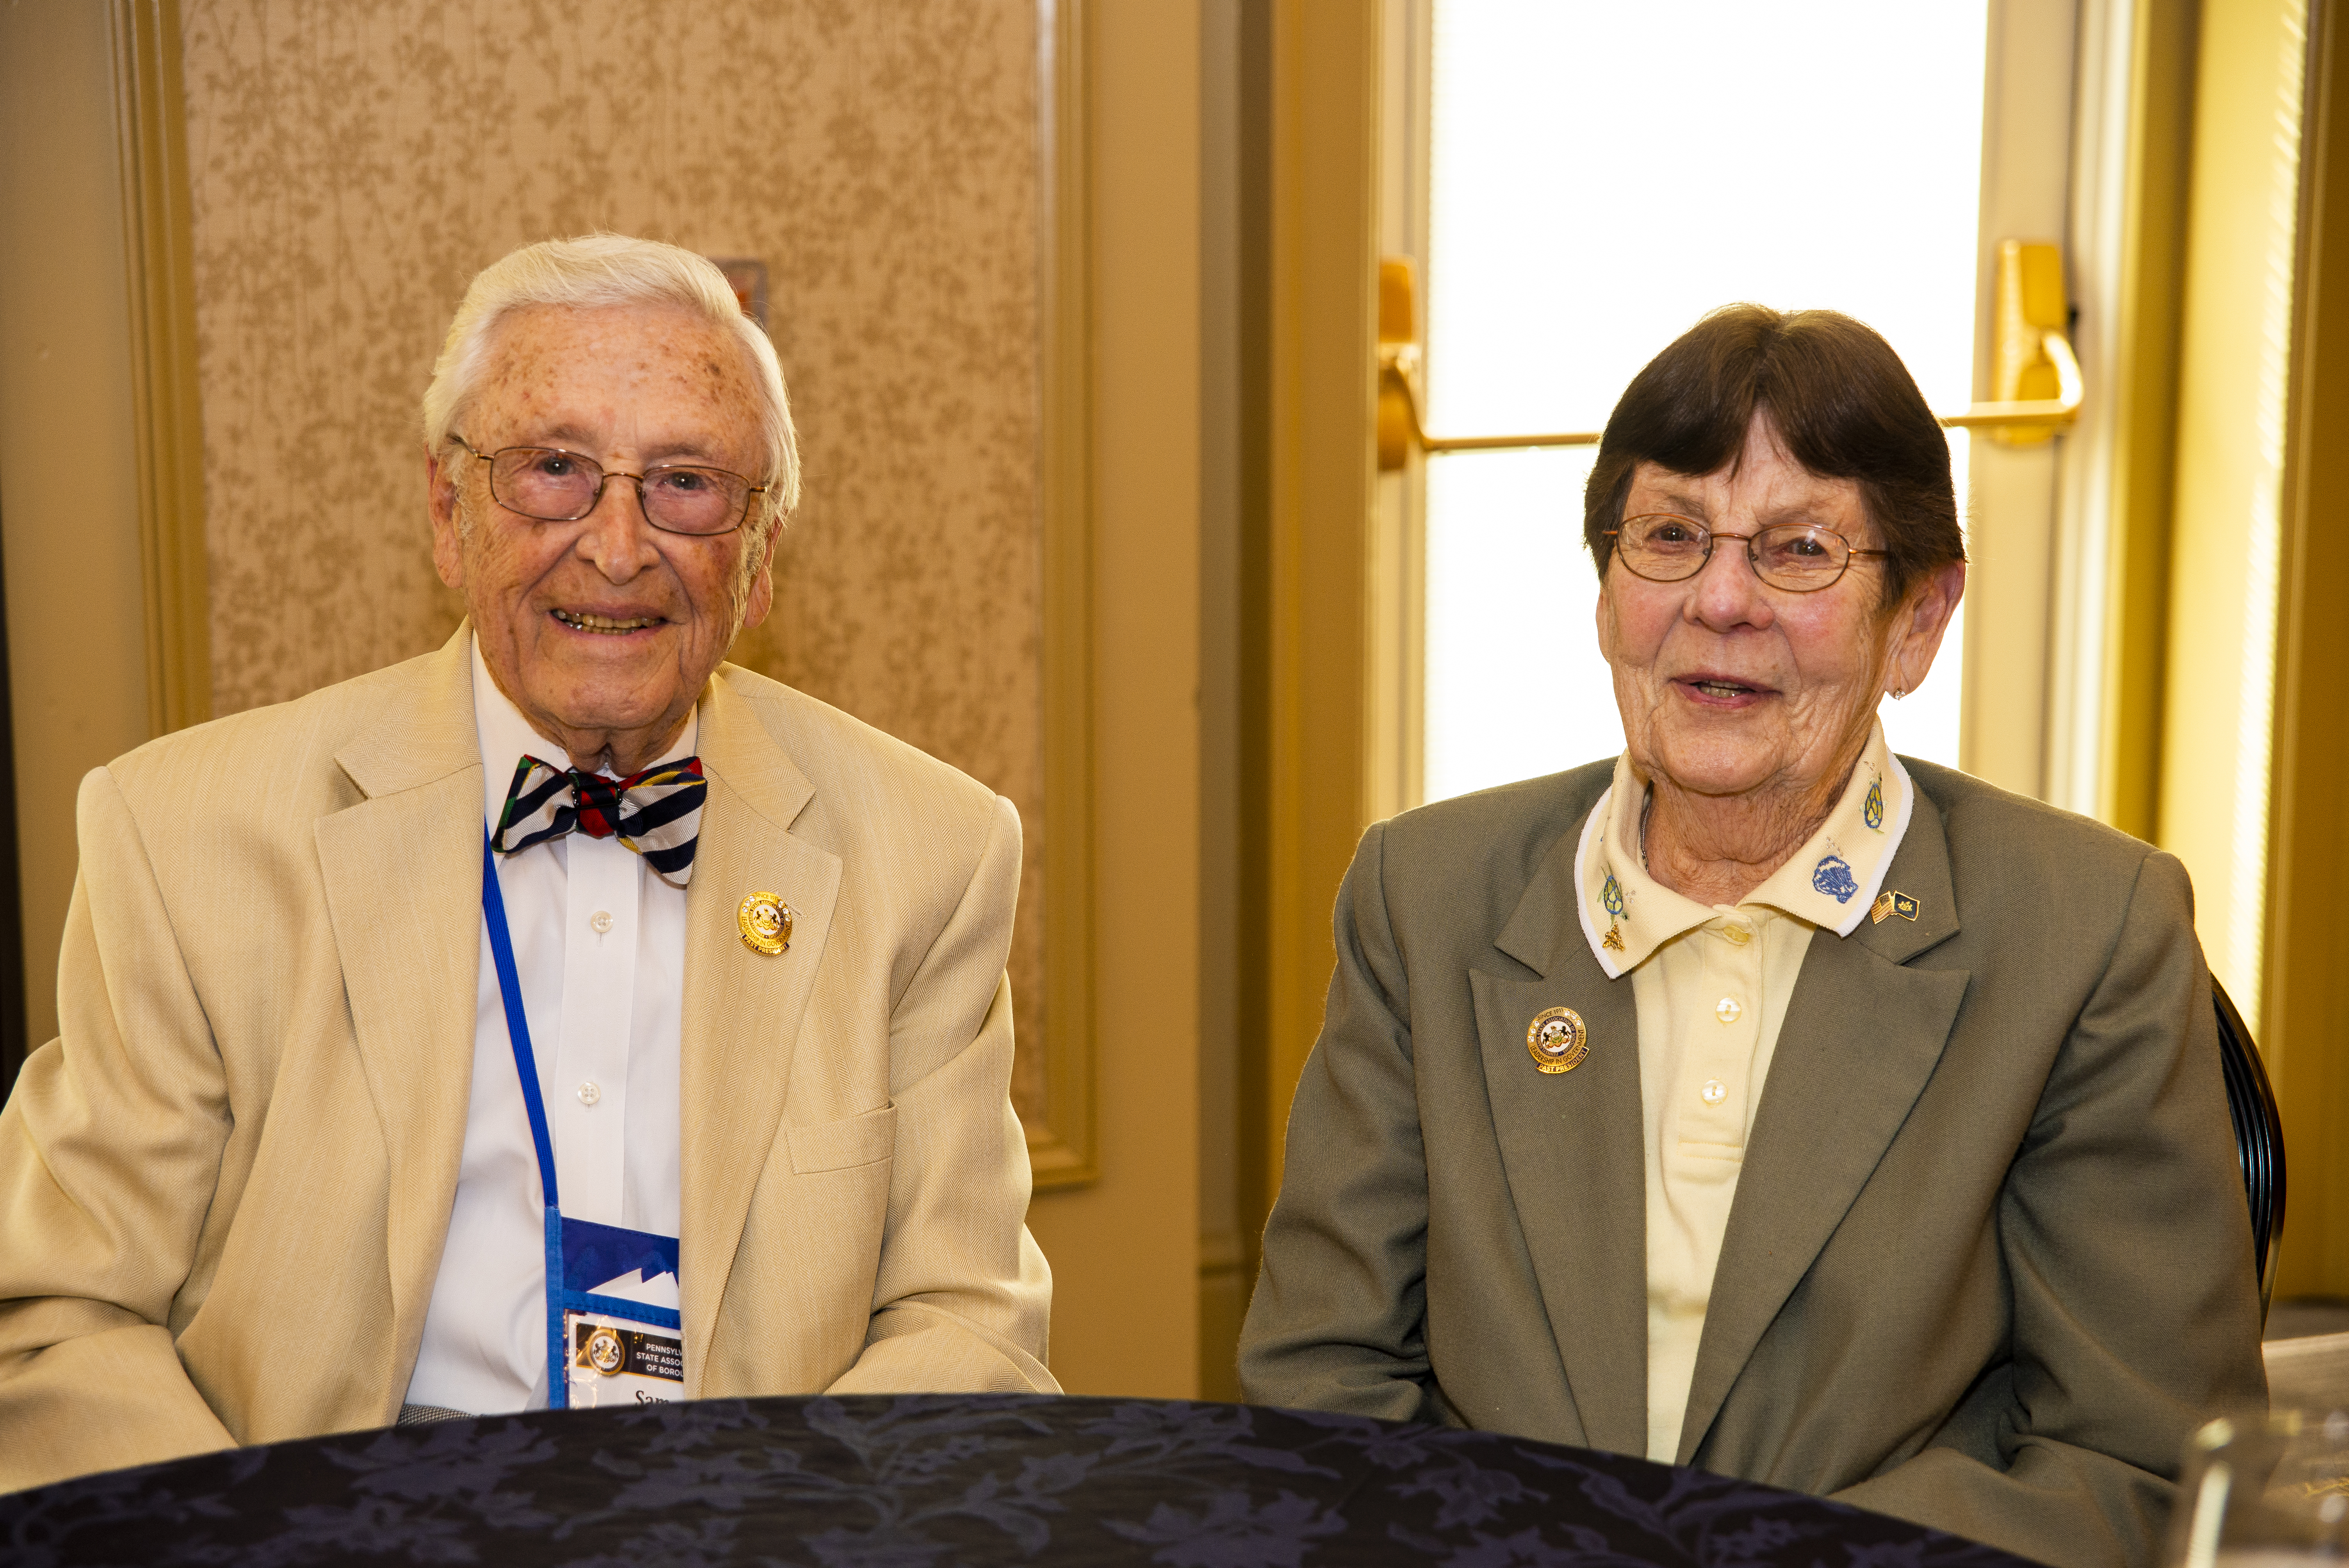 PSAB Past Presidents Sam Worley and Betty Ann Moyer